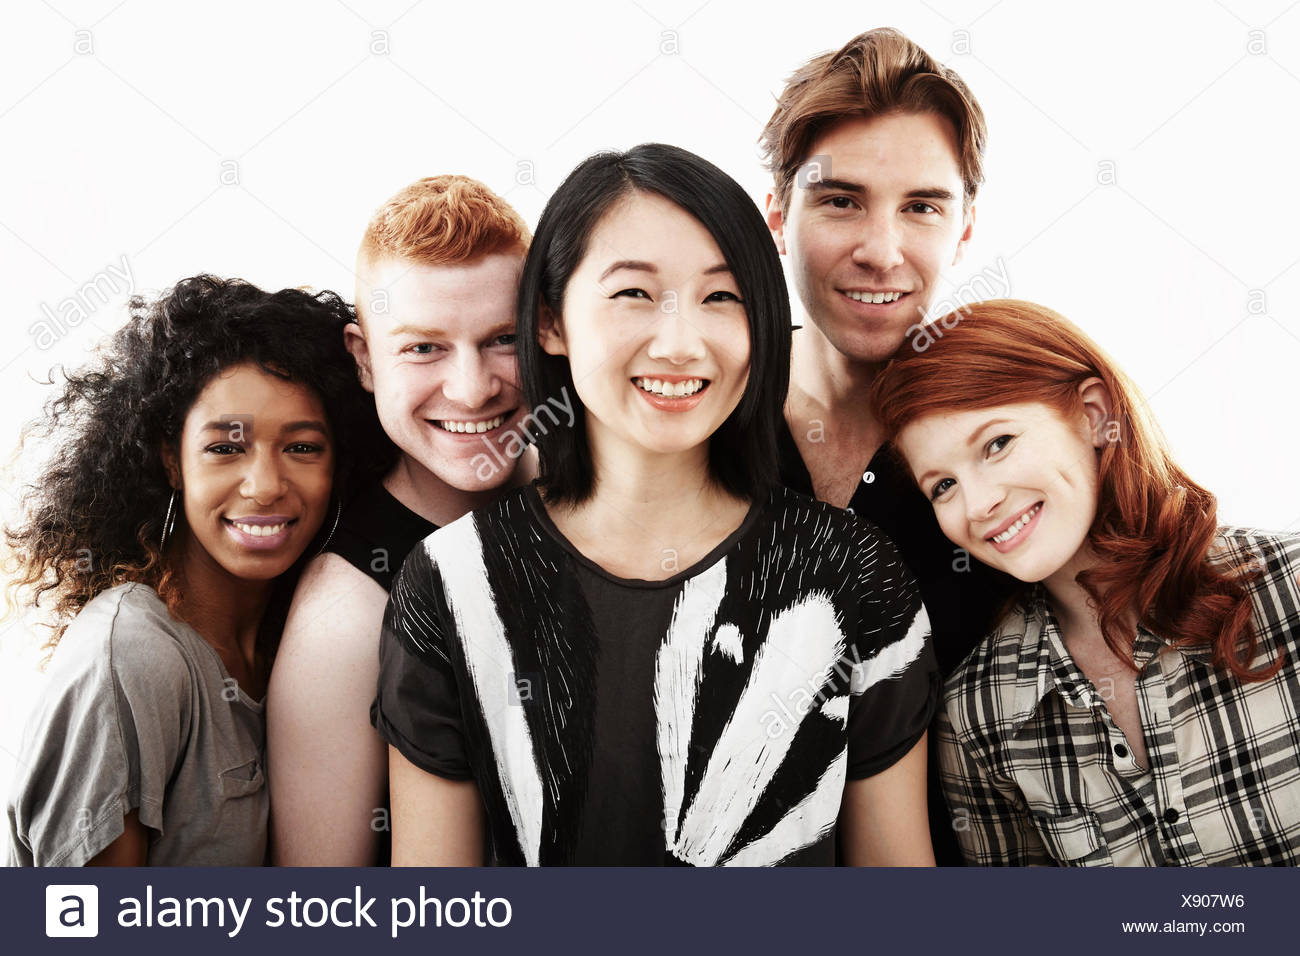 Studio portrait of five young adults smiling - Stock Image